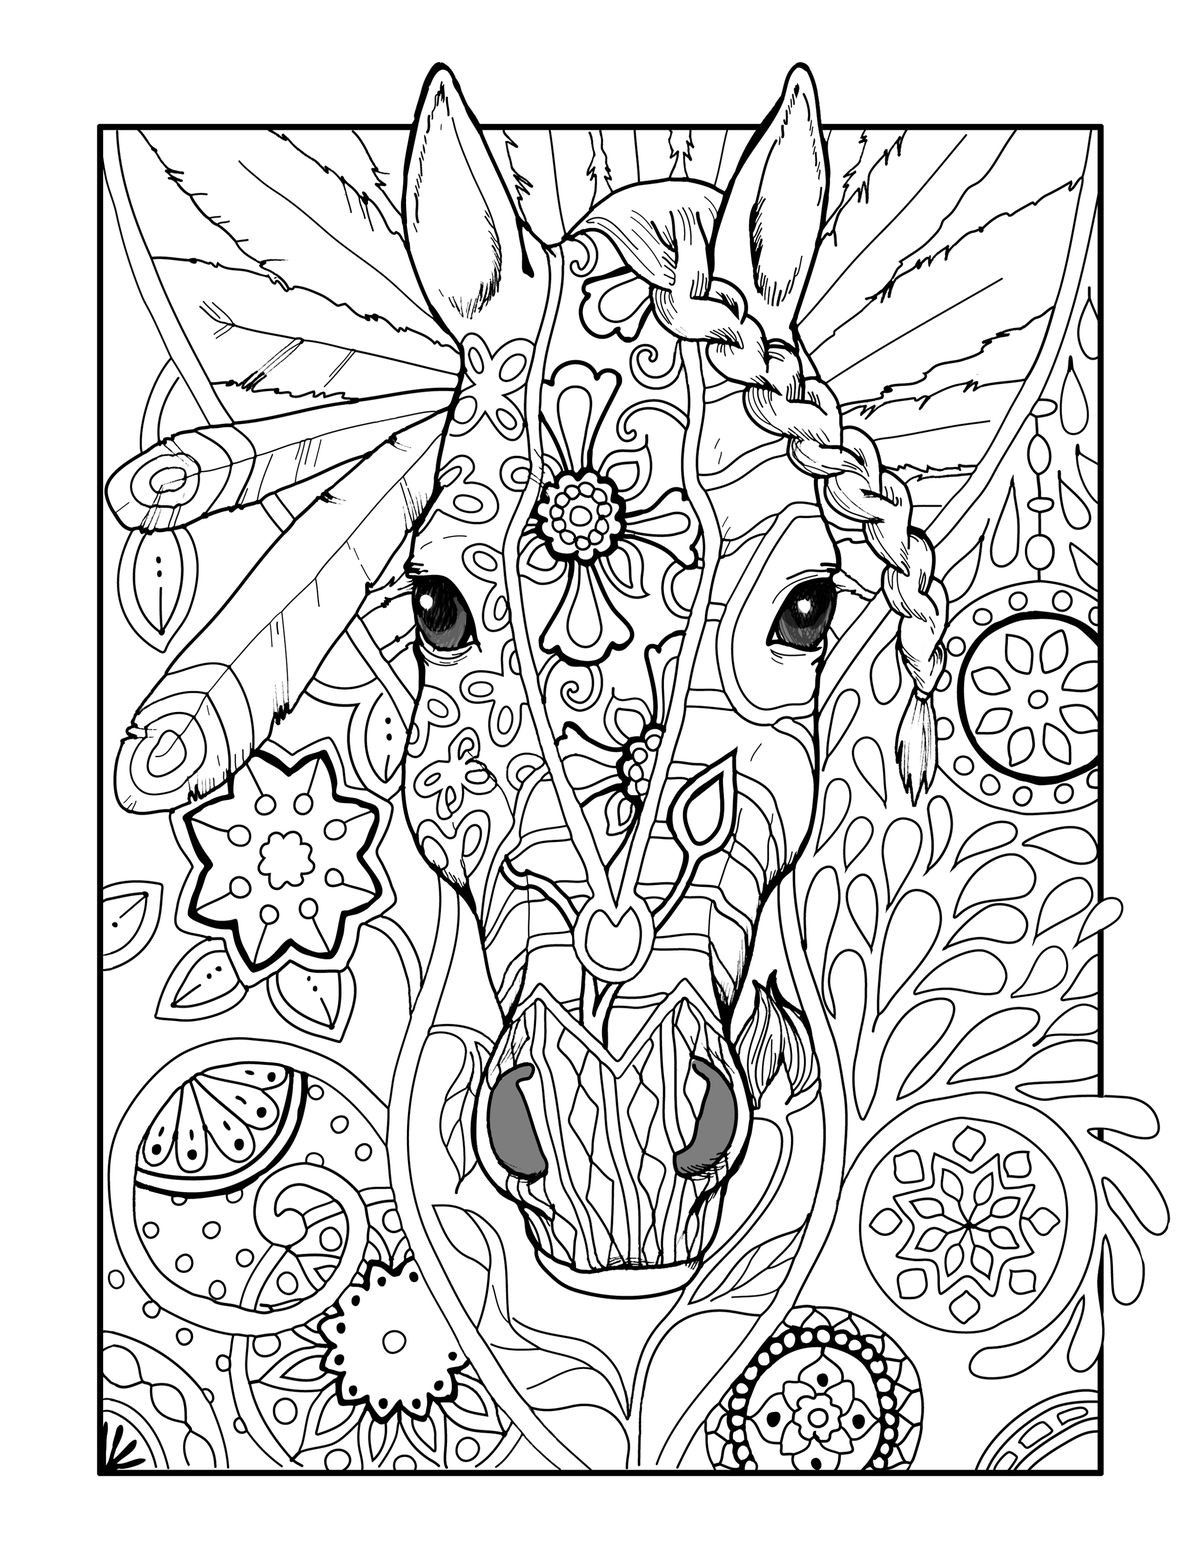 Pin By Silvia Fortes On Color Unicorn Coloring Pages Horse Coloring Pages Mermaid Coloring Pages [ 1552 x 1200 Pixel ]